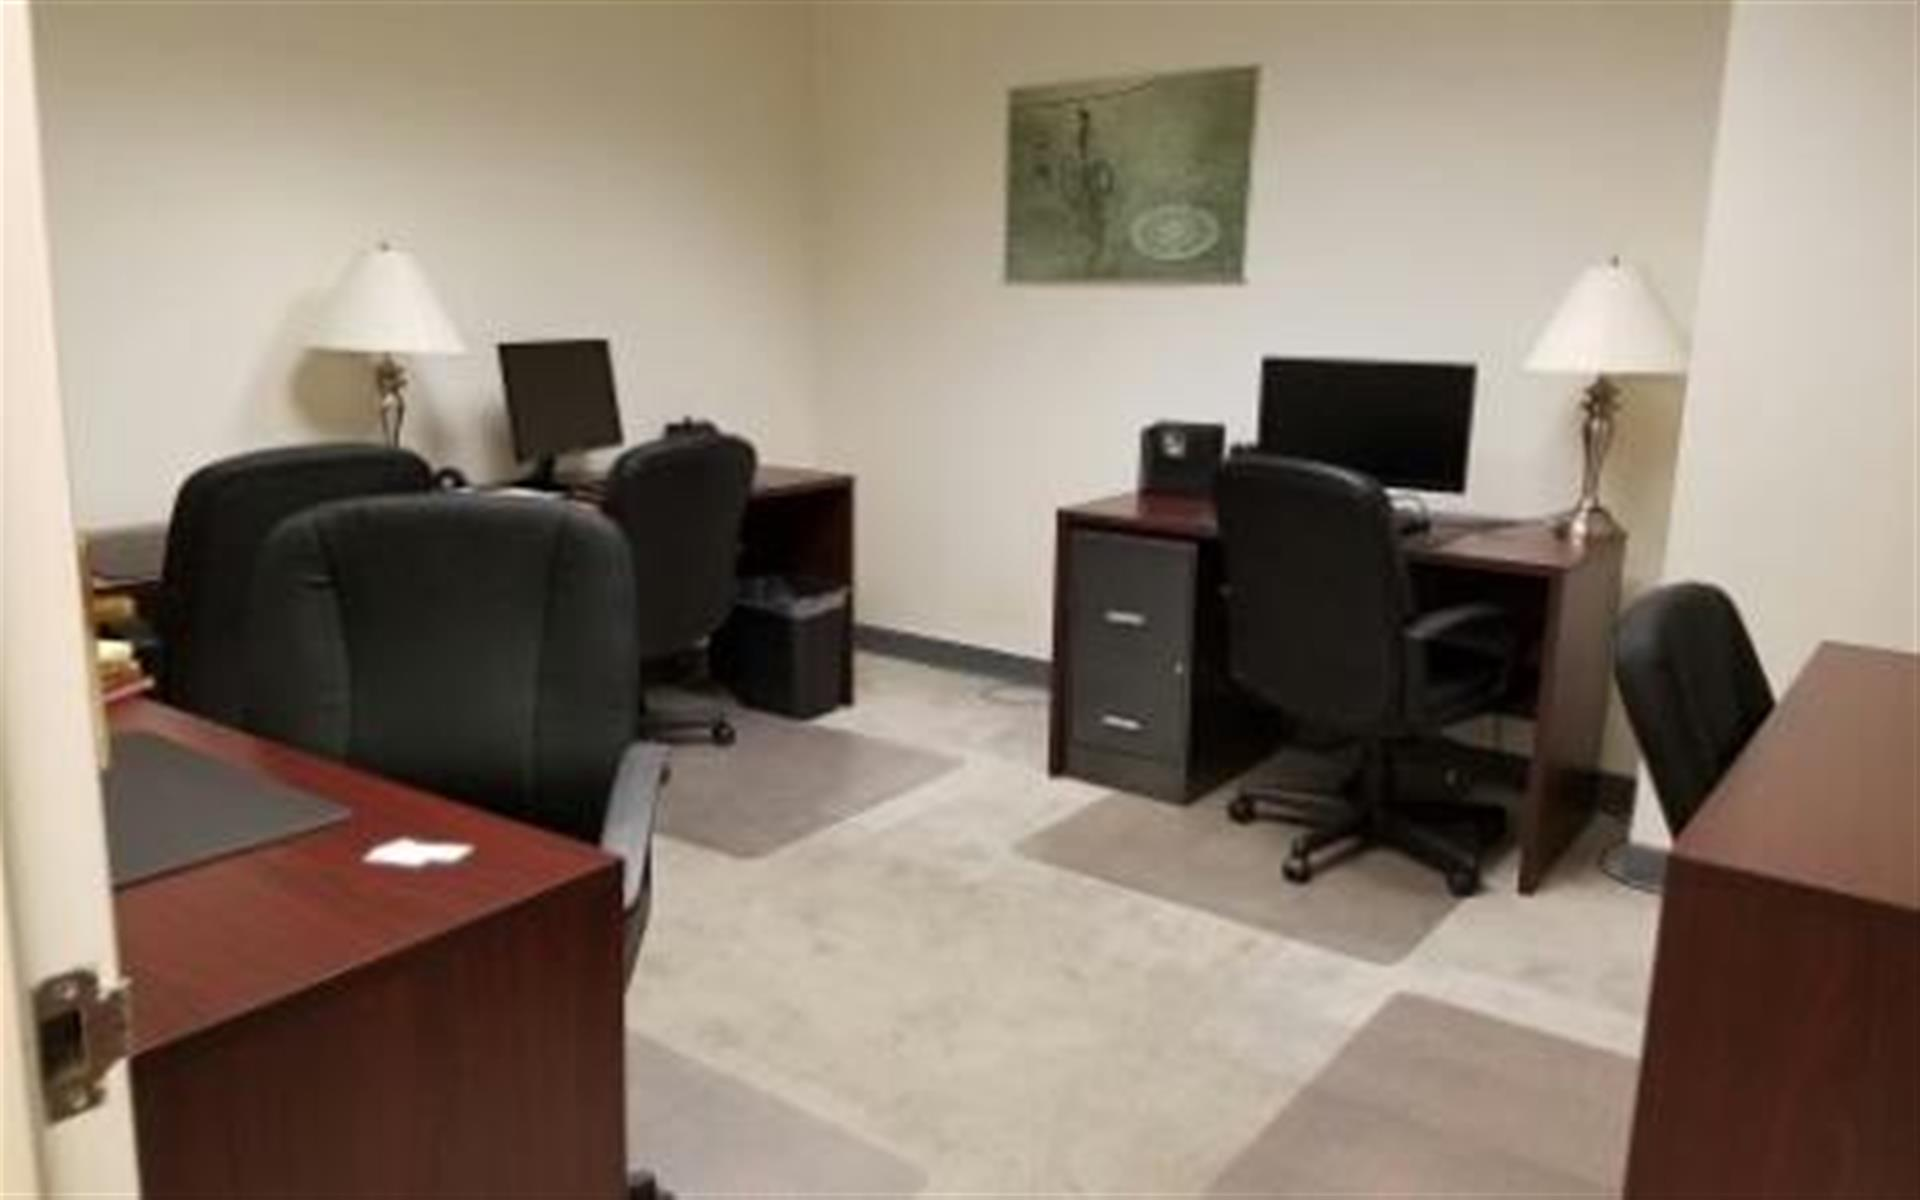 NYC Office Suites 708 (3rd Ave. & 44th) - Flexible Private Office Space 708 for 3